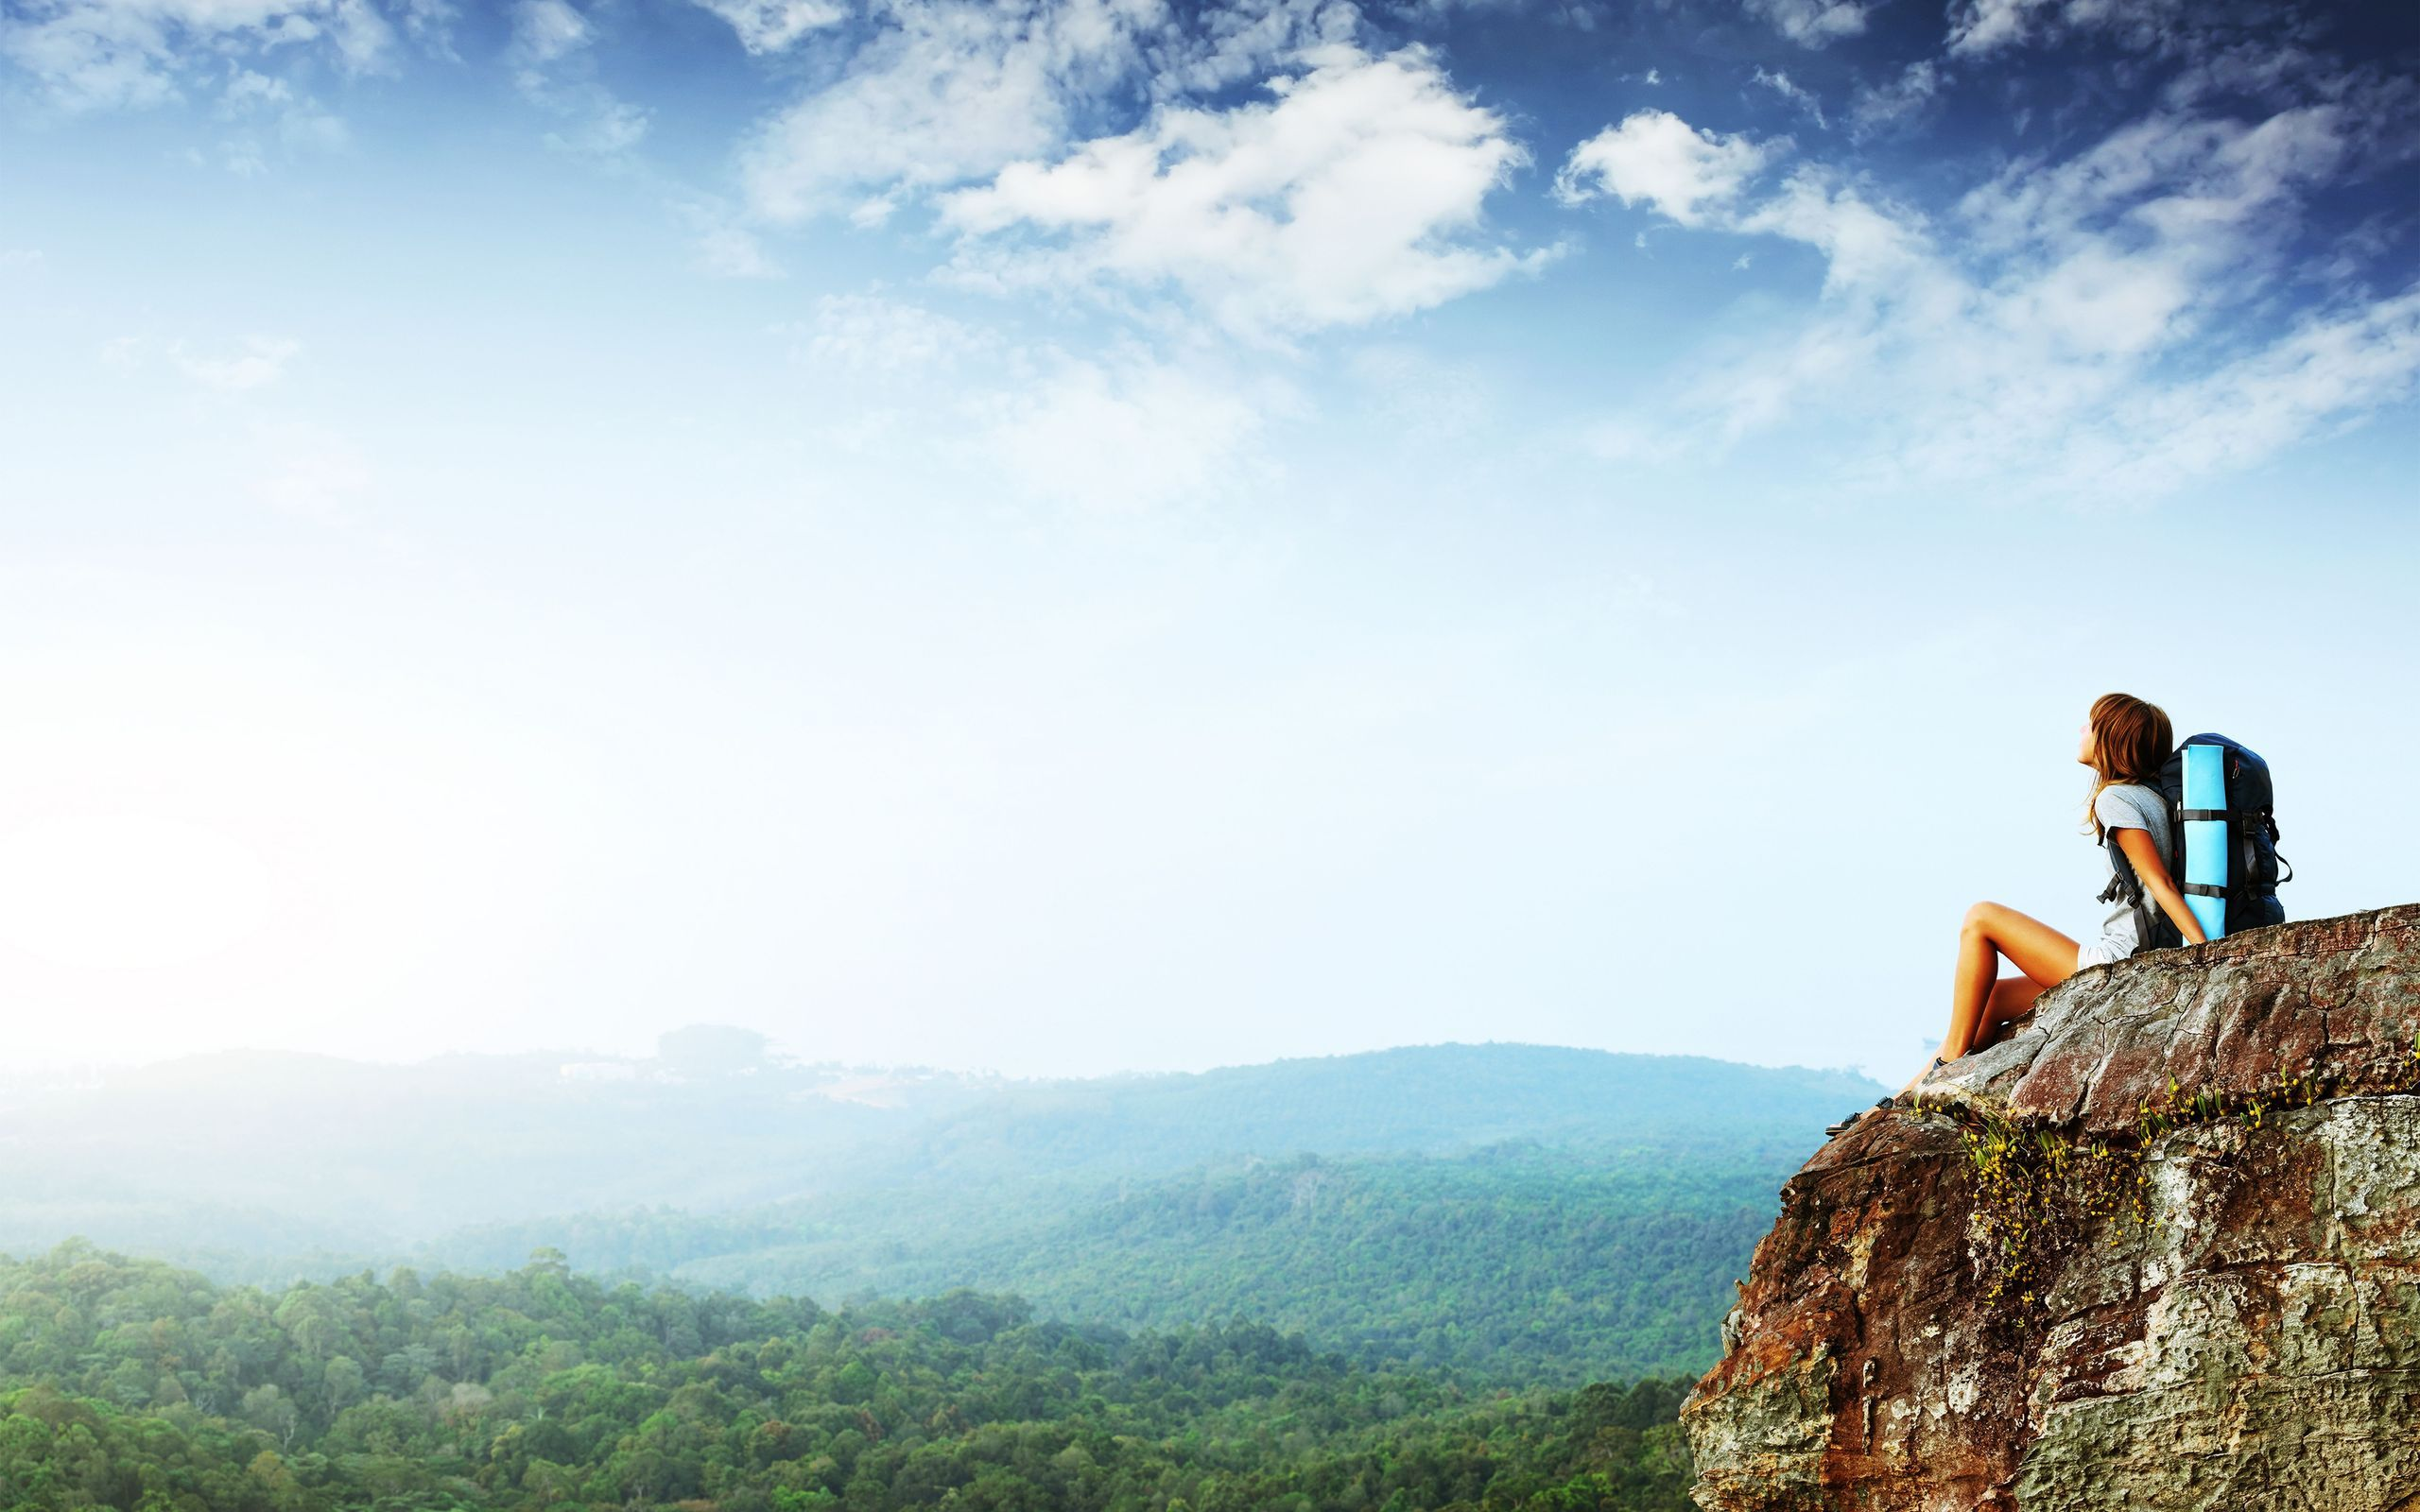 beautiful-journey-highness-cliff-the-girl-traveling-mountain-cliff-height-panorama-forest